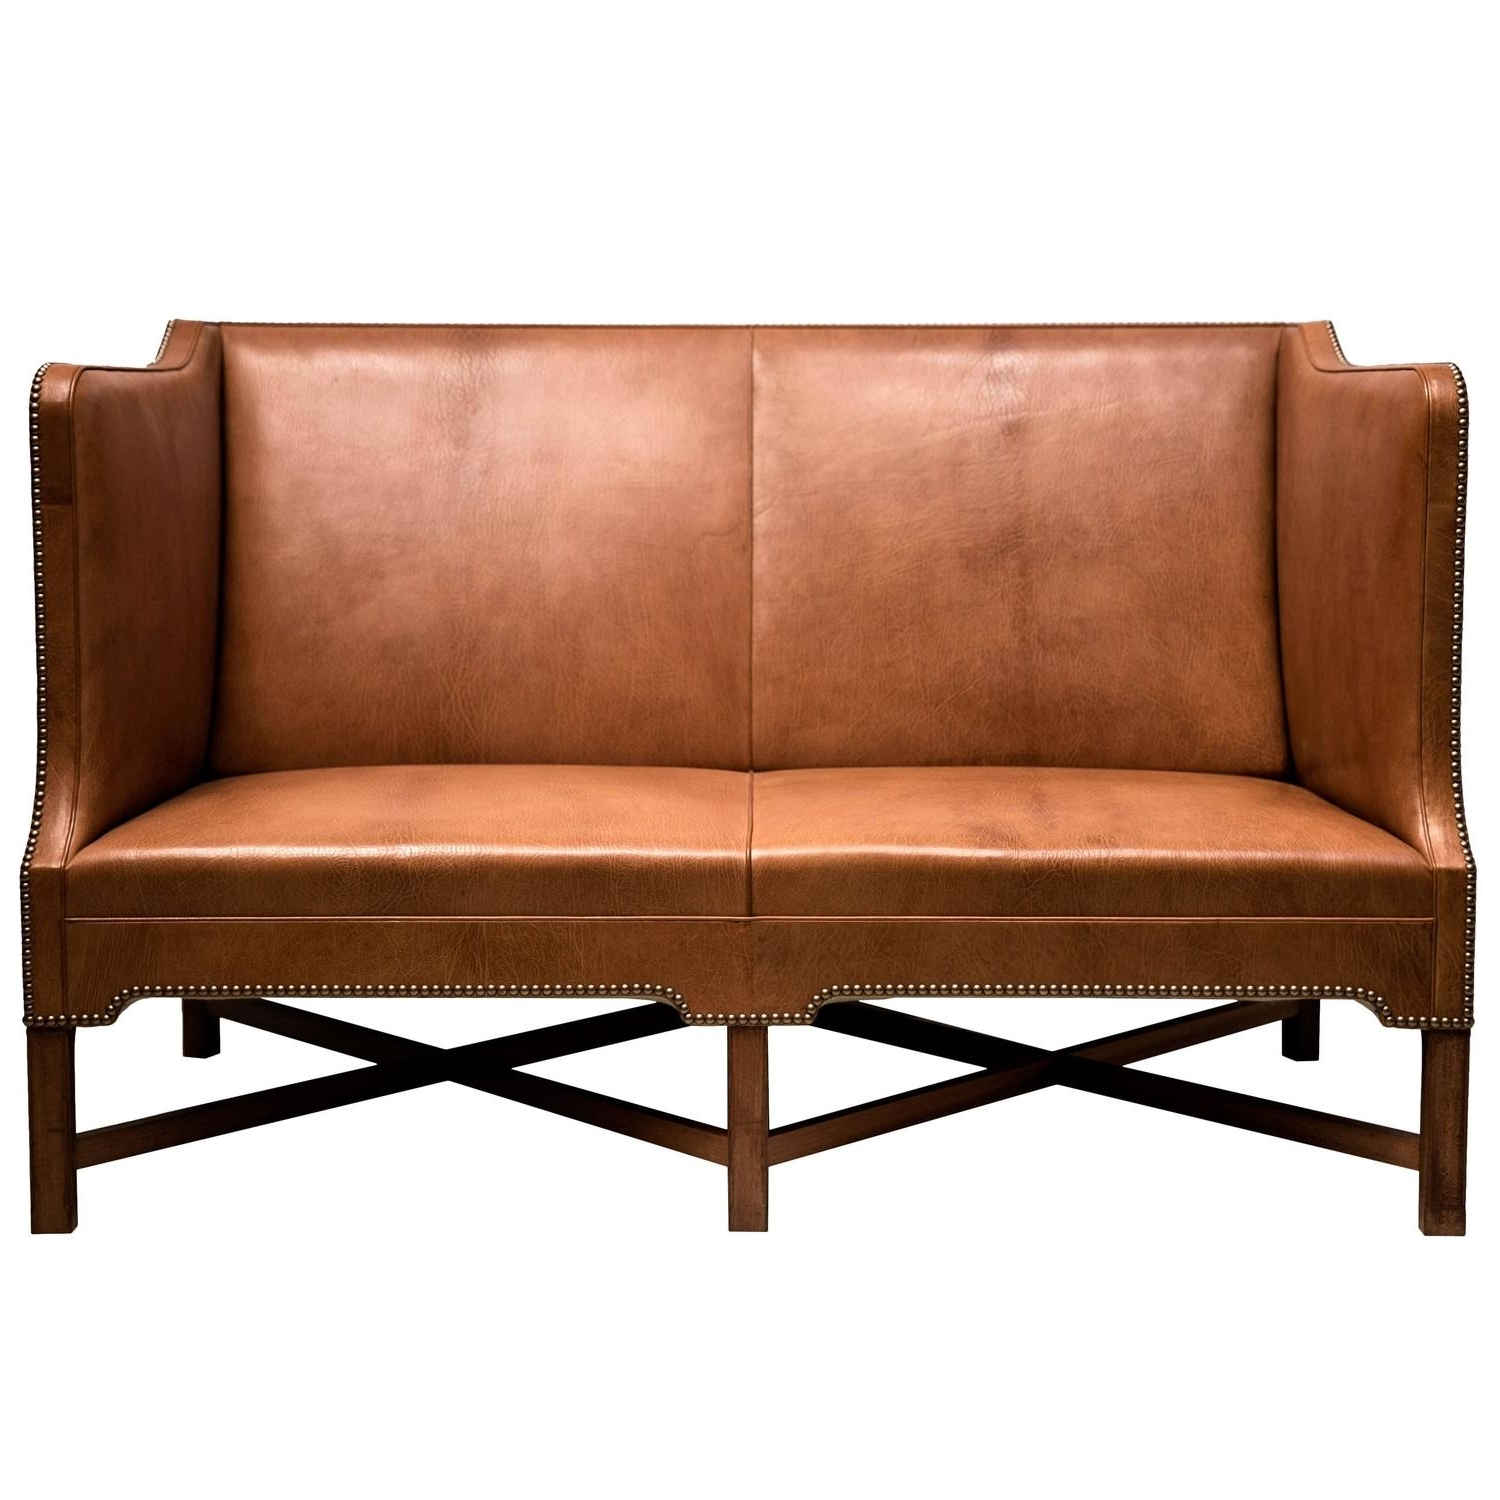 1930S Sofas – 122 For Sale At 1Stdibs With Most Popular 1930S Sofas (View 6 of 15)